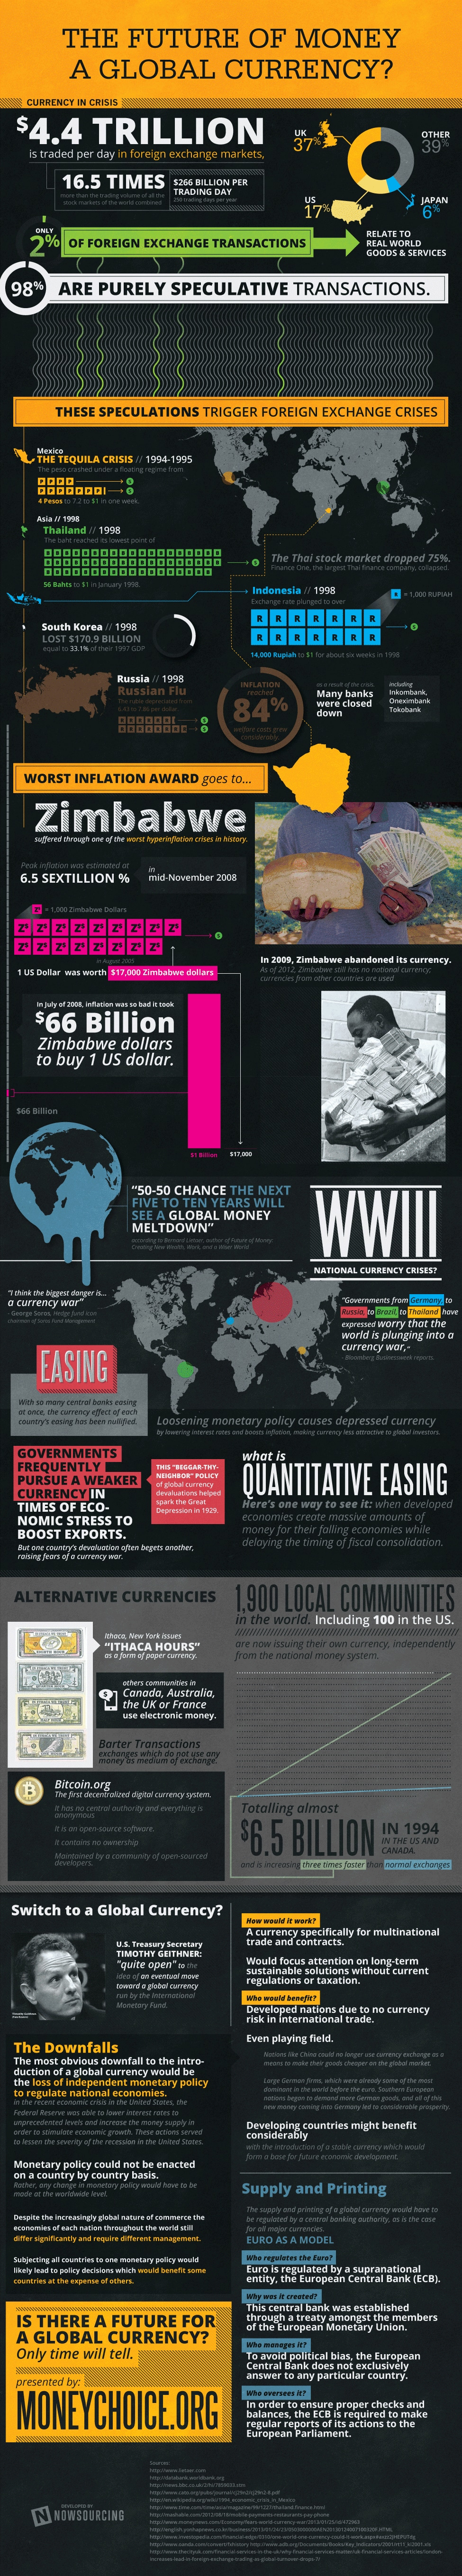 money-globe-global-currency-infographic